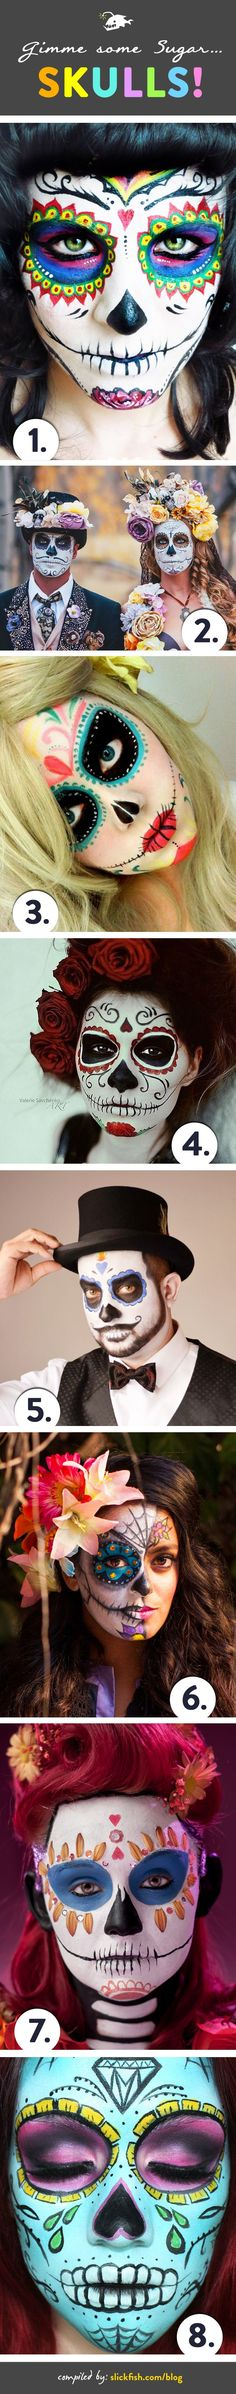 Sugar skull designs are a popular choice for adult face paint this Halloween. We love the look, so we gathered some of our favorites for your inspiration. | by slickfish.com #facepaintingideasforadults